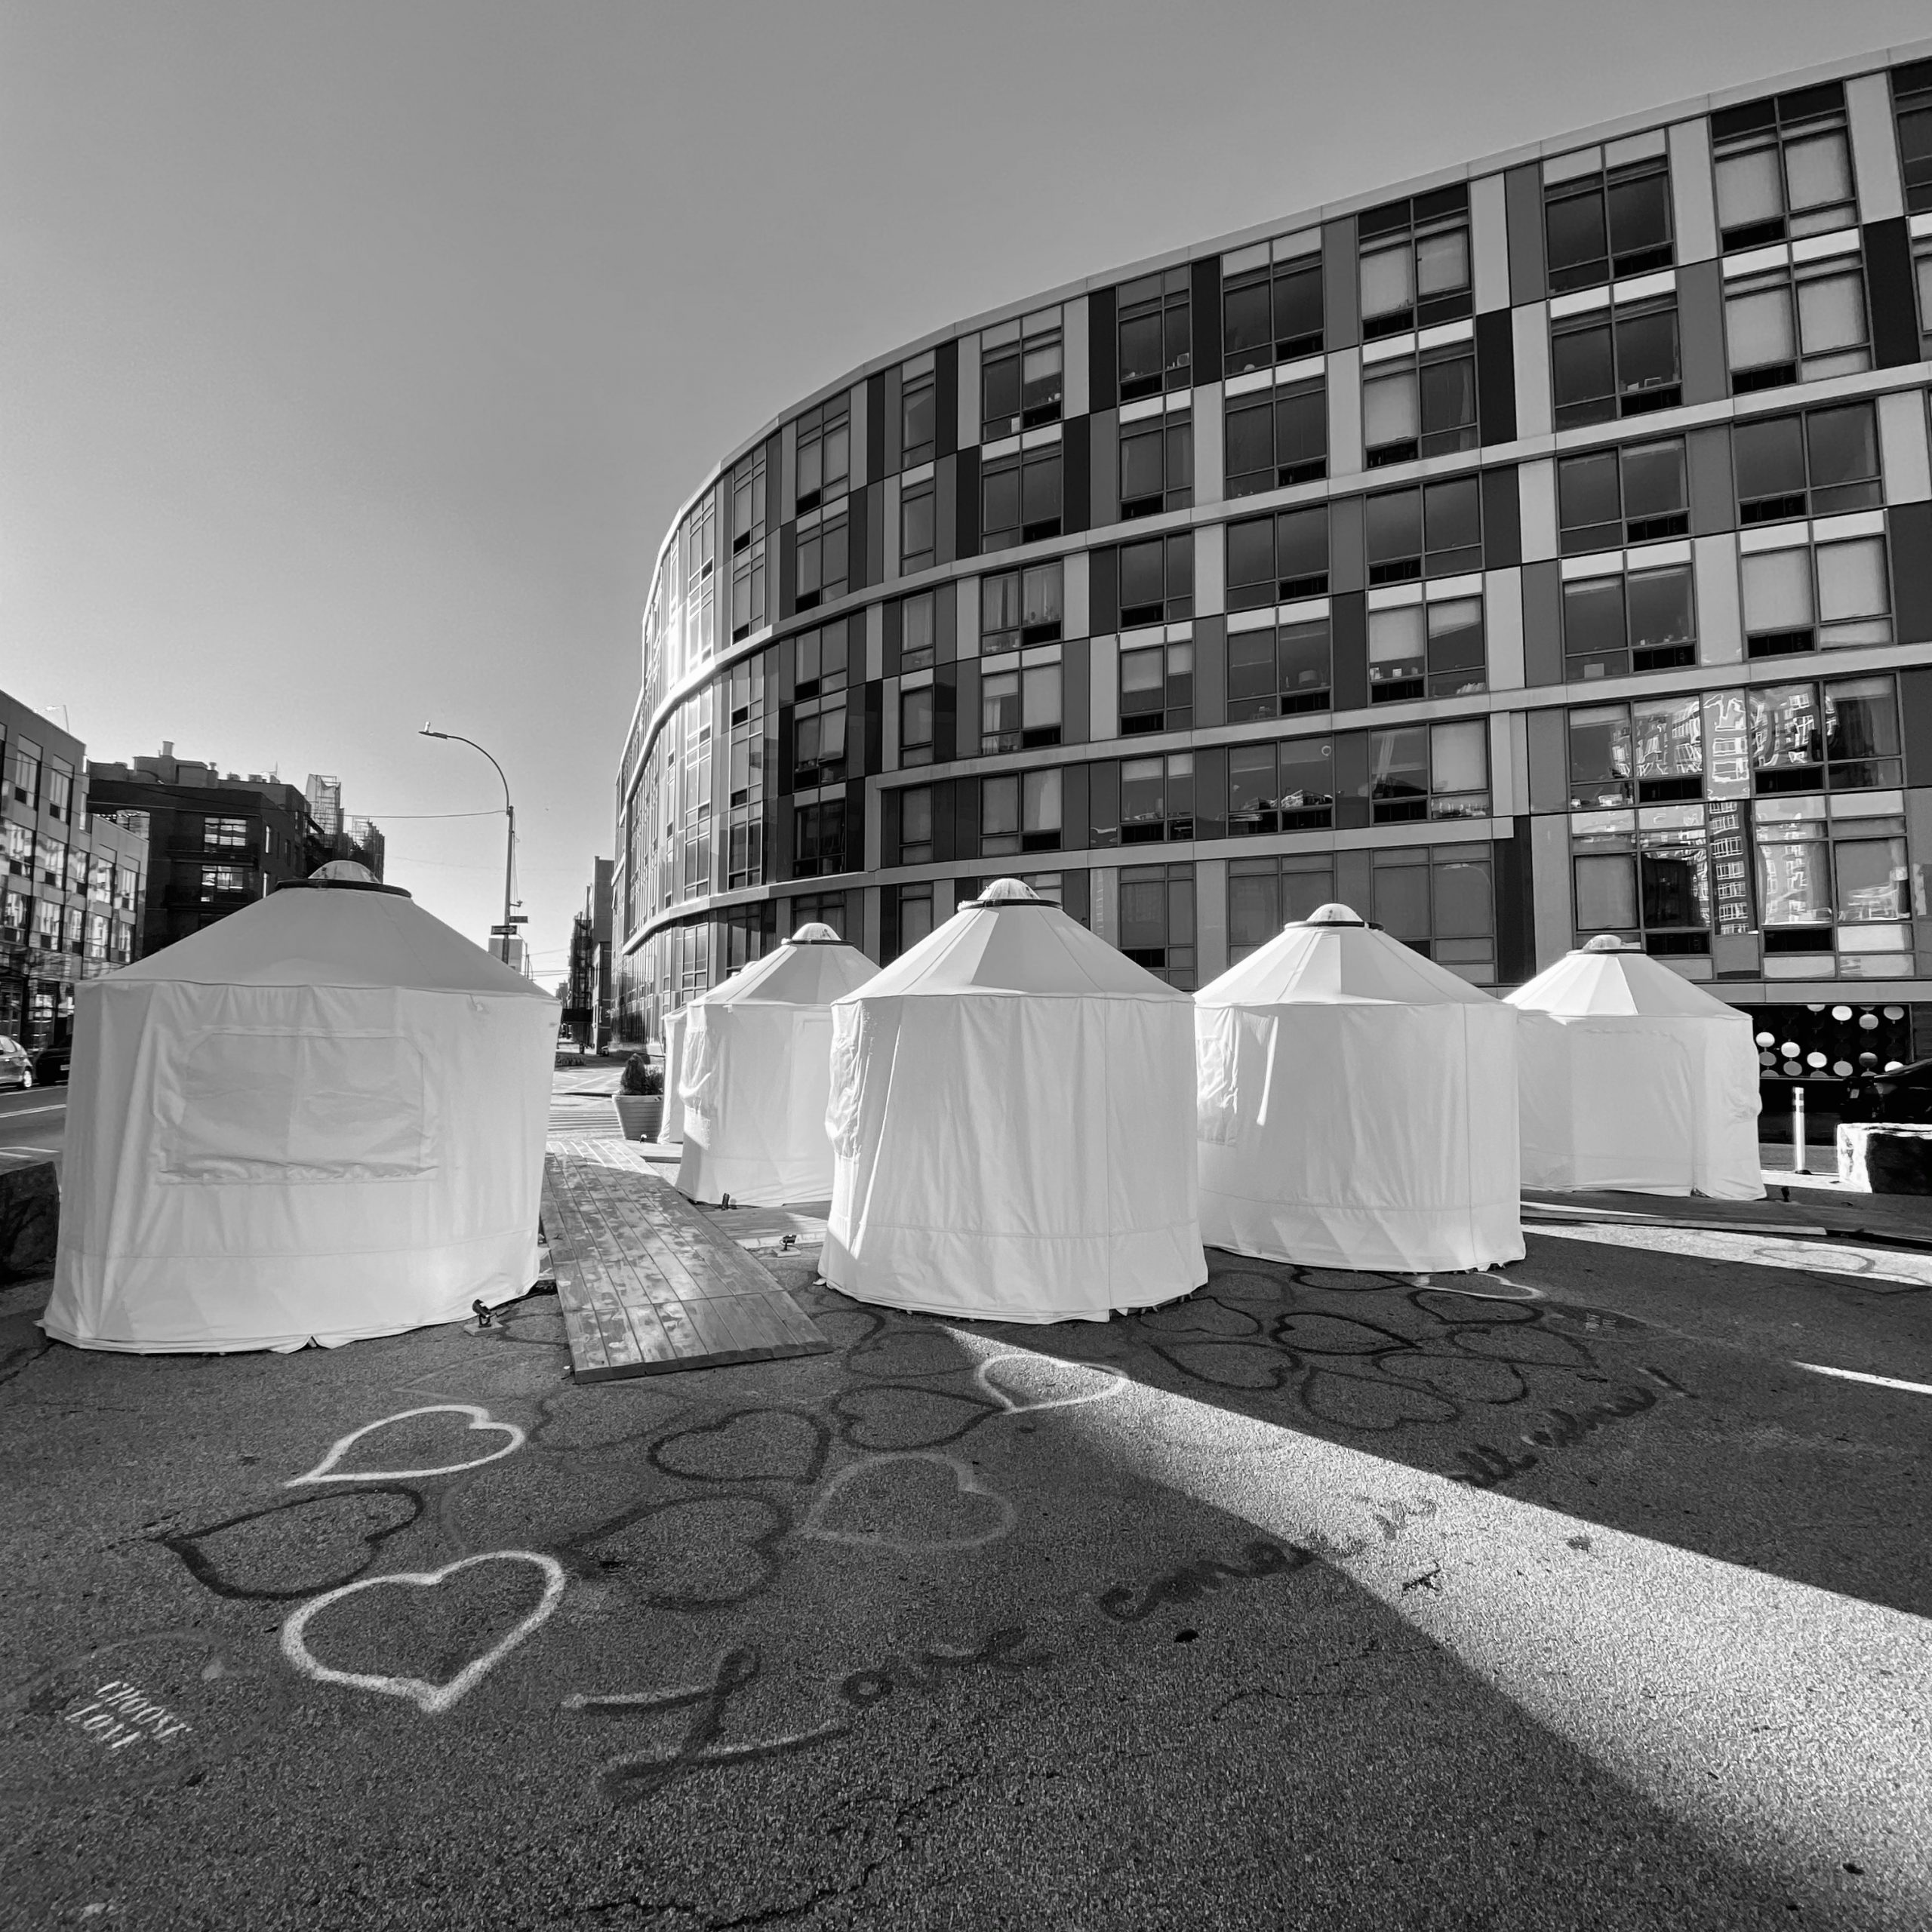 Outdoor dining yurts in Williamsburg